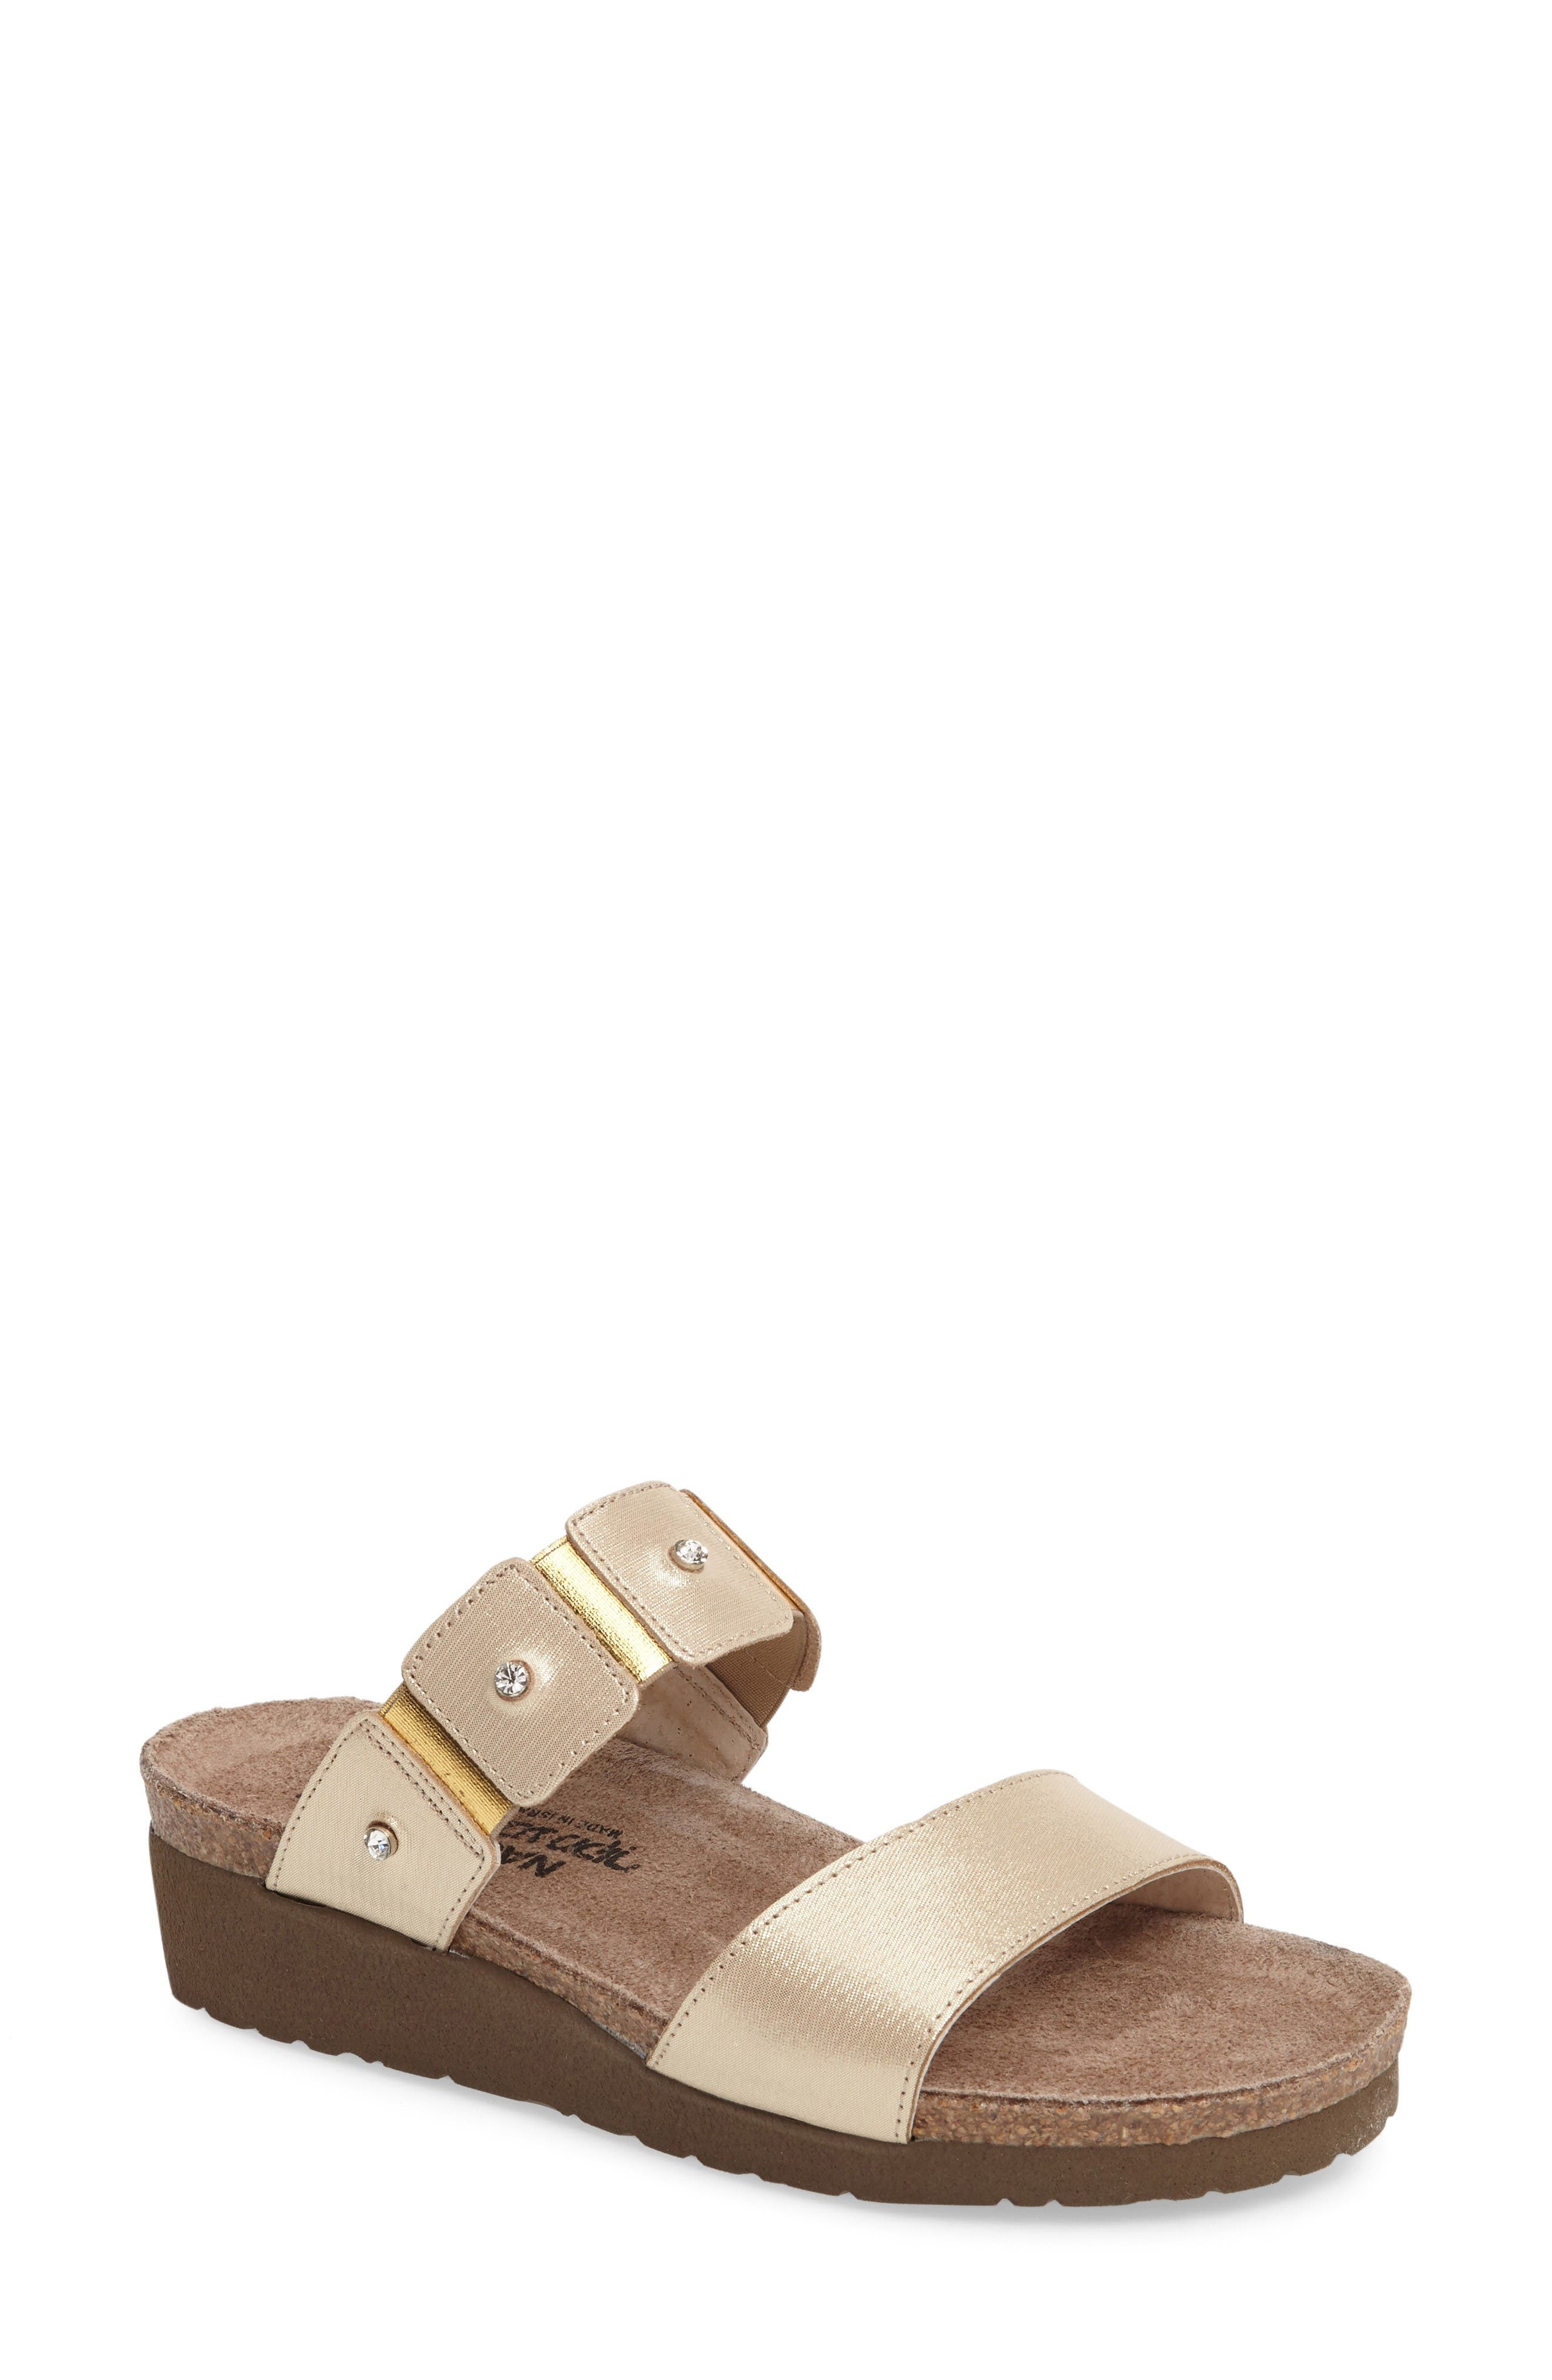 NAOT 'Ashley' Sandal